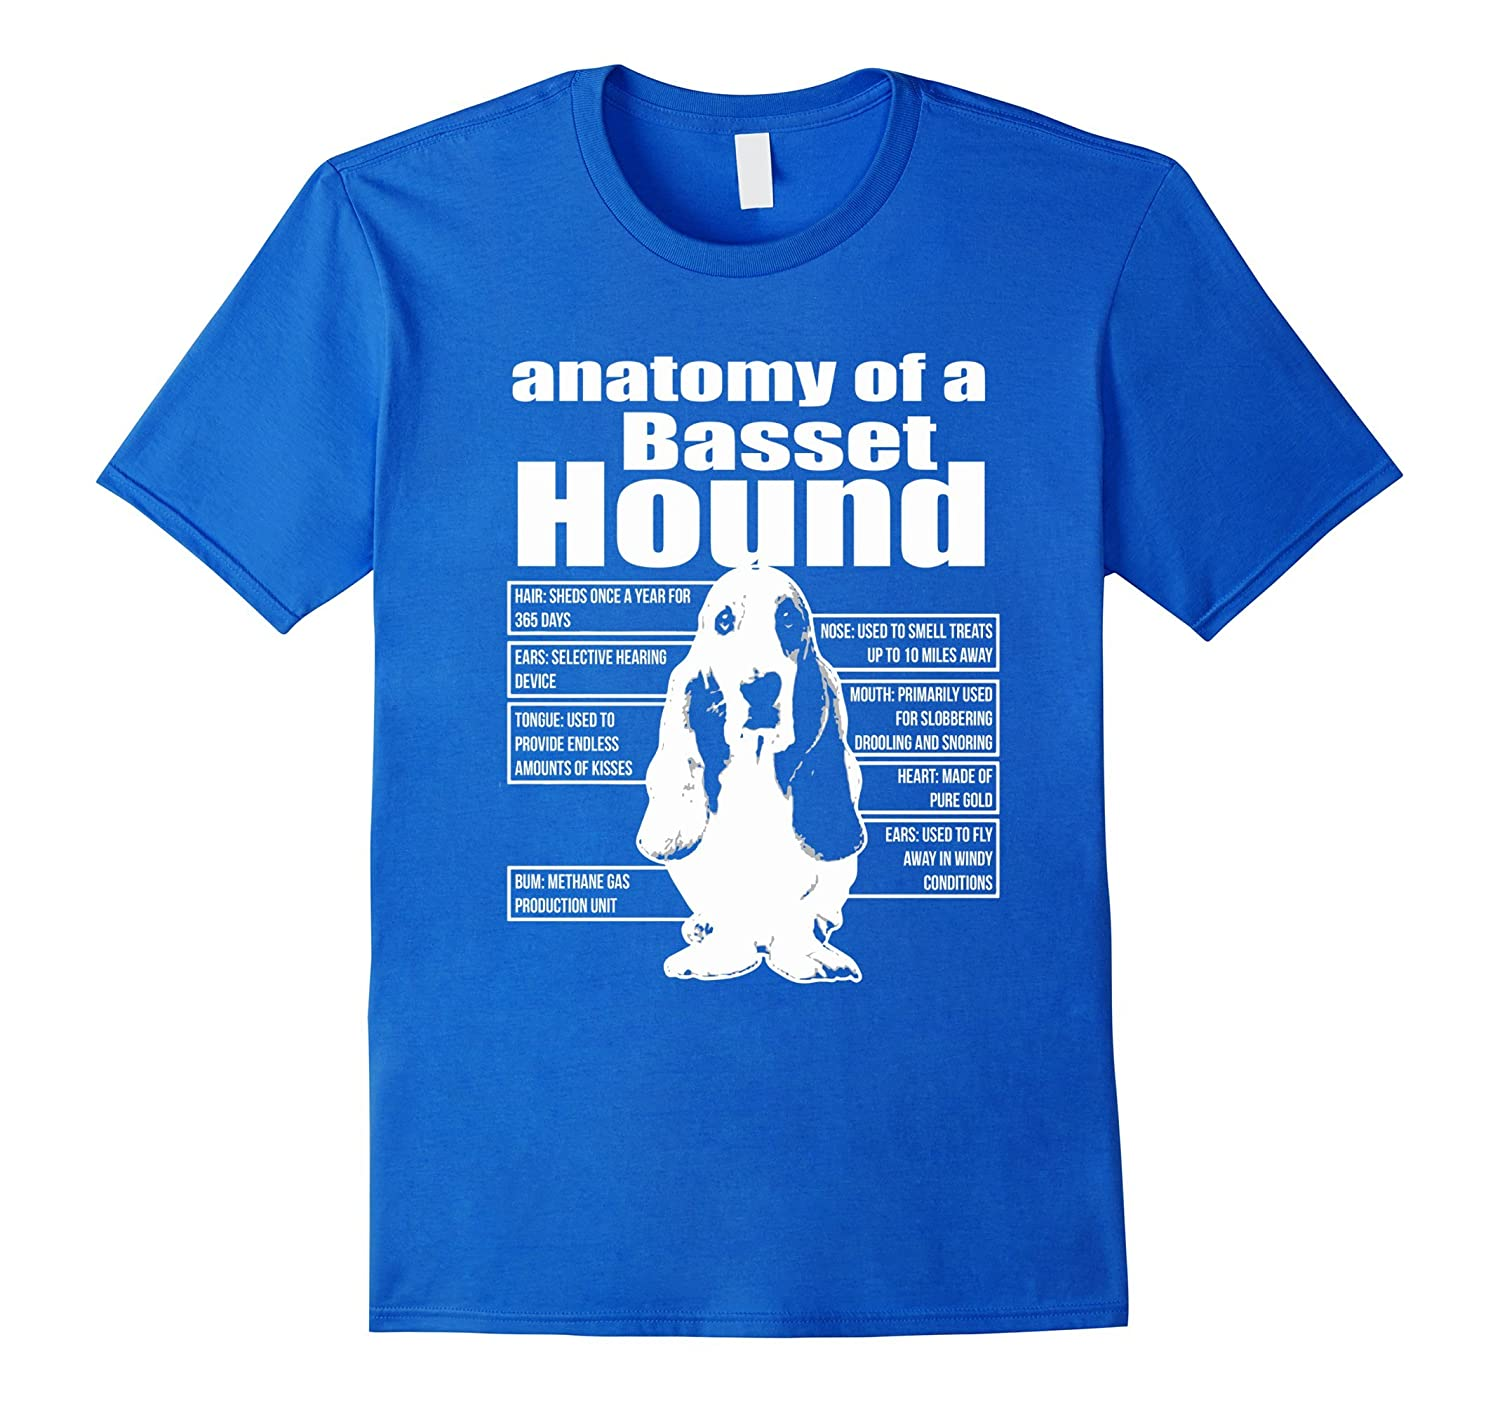 Amazon.com: ANATOMY OF A BASSET HOUND SHIRTS: Clothing